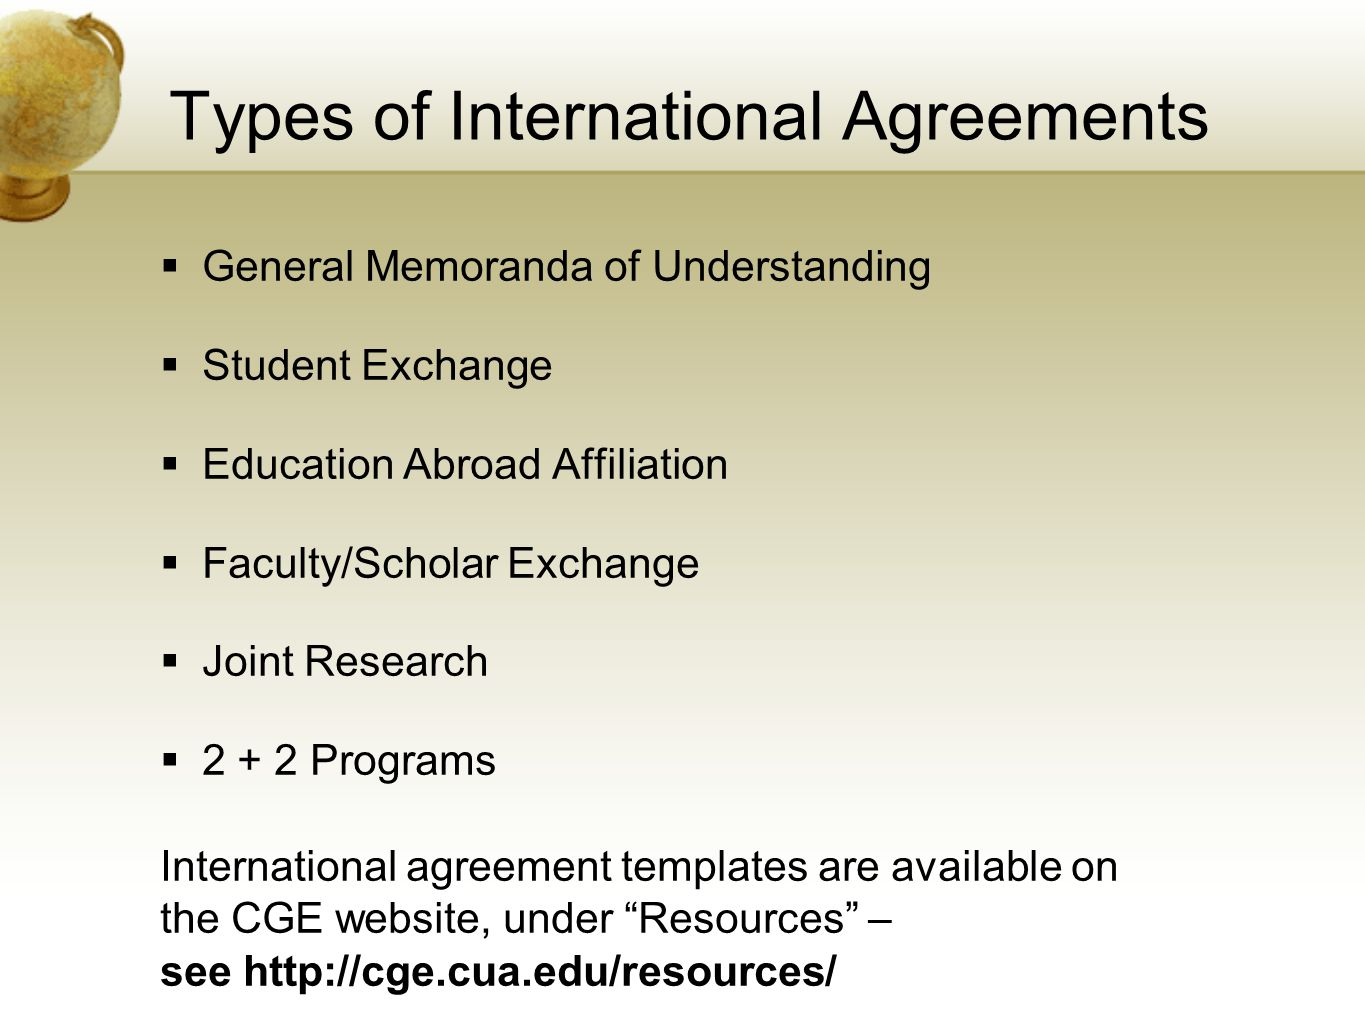 Types of International Agreements General Memoranda of Understanding Student Exchange Education Abroad Affiliation Faculty/Scholar Exchange Joint Research 2 + 2 Programs International agreement templates are available on the CGE website, under Resources – see http://cge.cua.edu/resources/